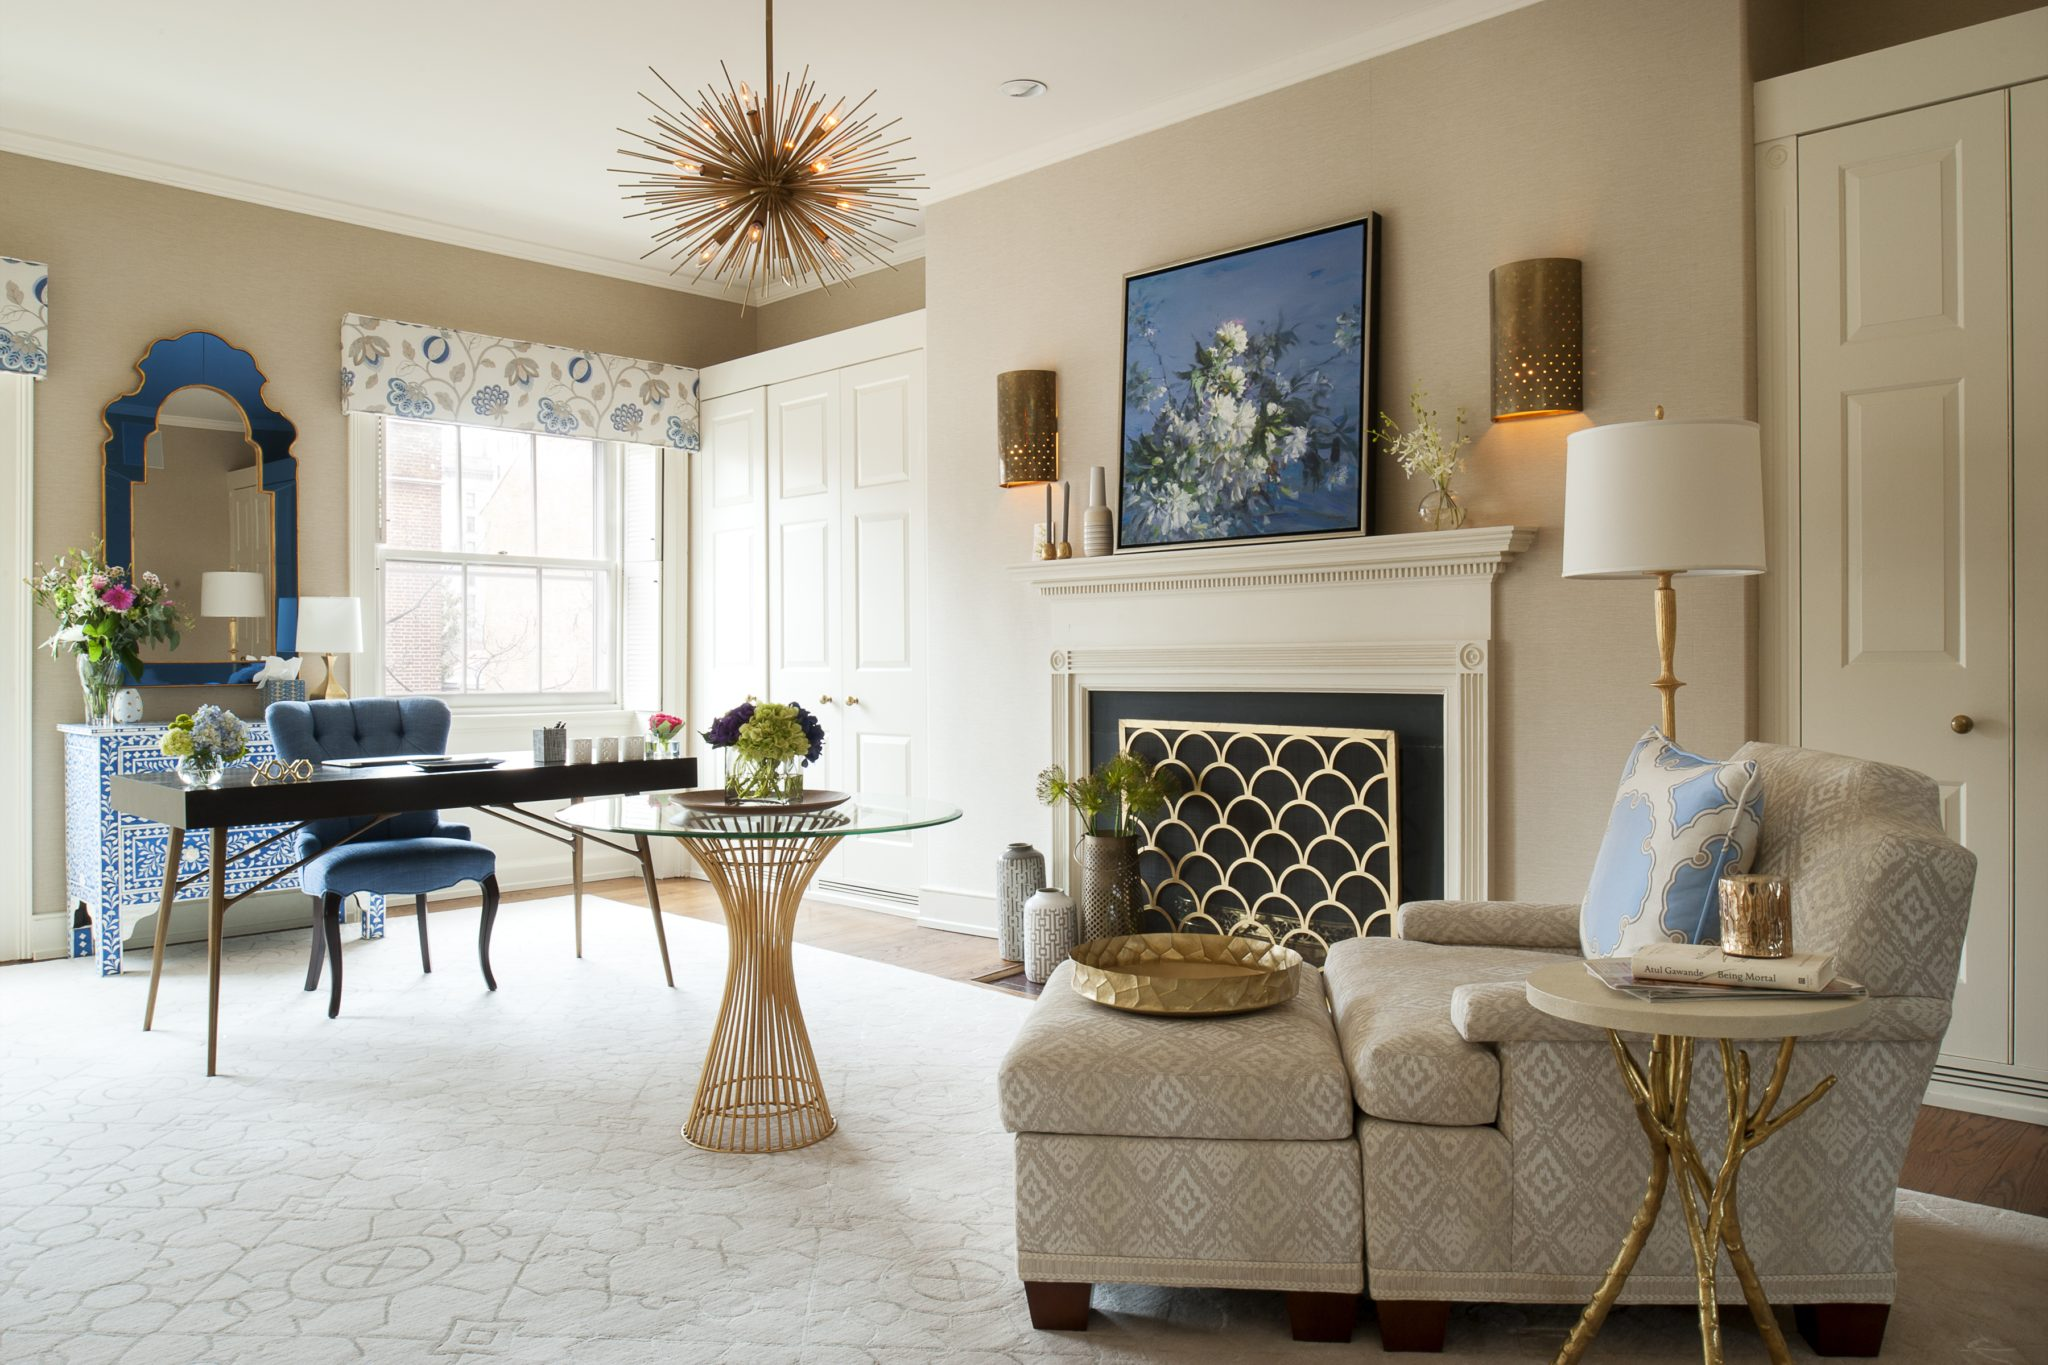 Glamourous and Sophisticated Home Office with gold and french blue accents by Michele Plachter Design